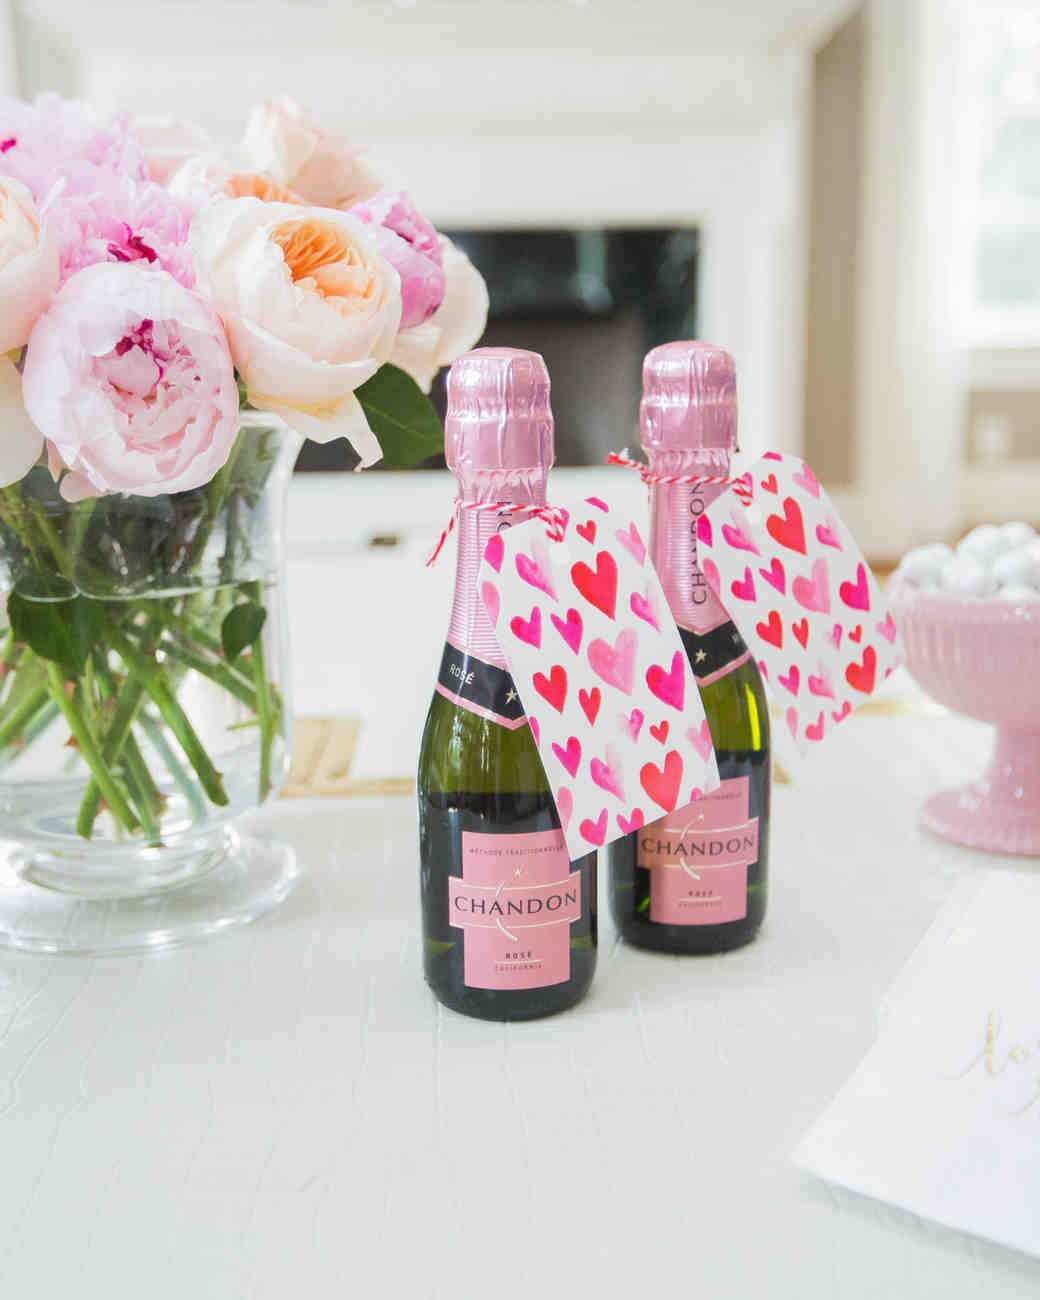 fashionable-hostess-bridal-shower-roses-mini-champagne-0416.jpg